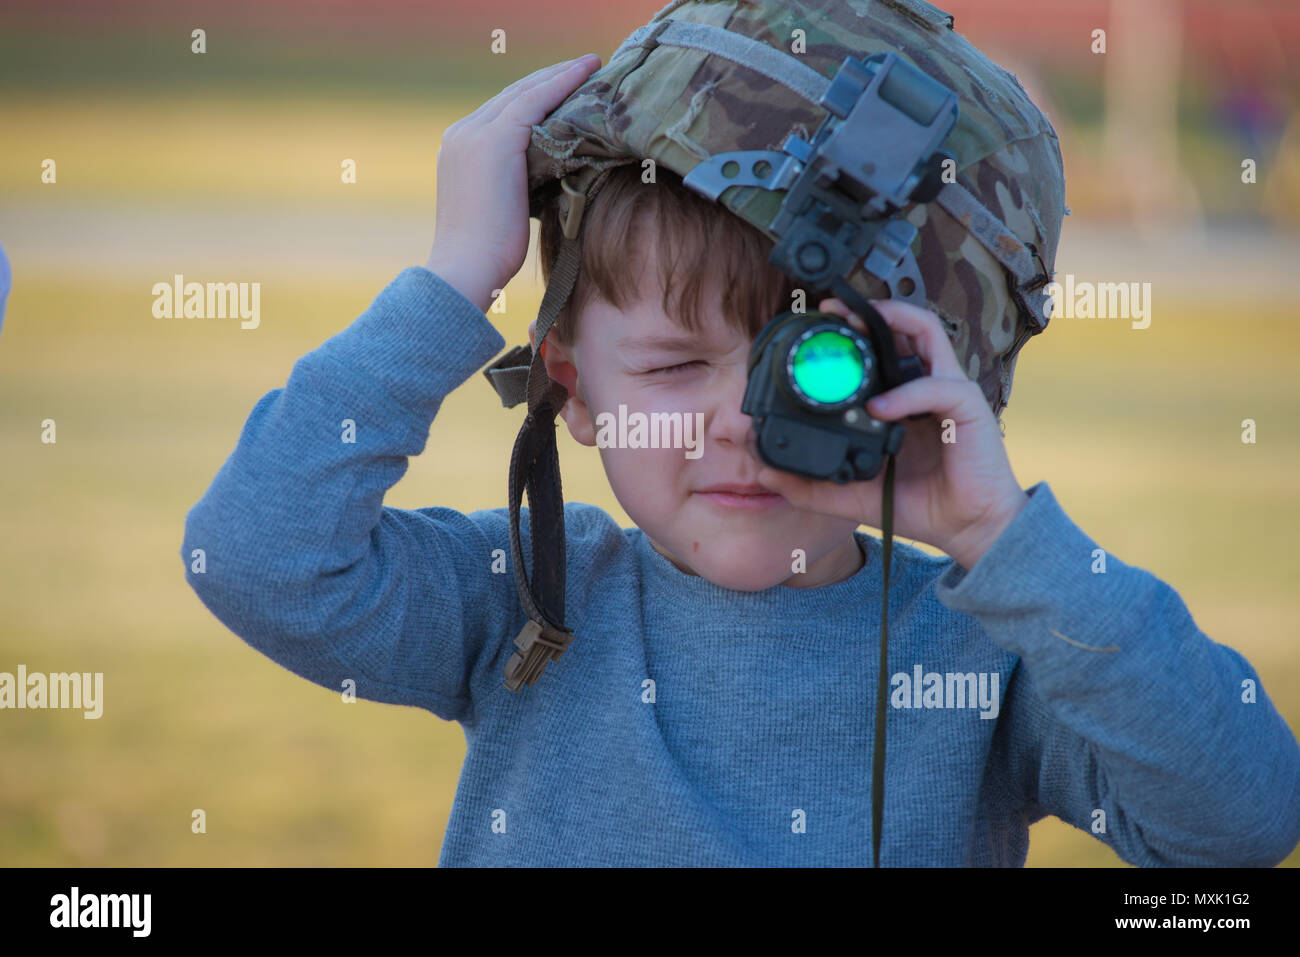 A 3rd Infantry Division family member peers through an optic at a static display during Marne Week on Fort Stewart Nov. 15, 2016. Marne Week is a week of special activities for soldiers and family members in celebration of the 99th anniversary of the 3rd Infantry Division. (Photo by LTC Brian J. Fickel) - Stock Image